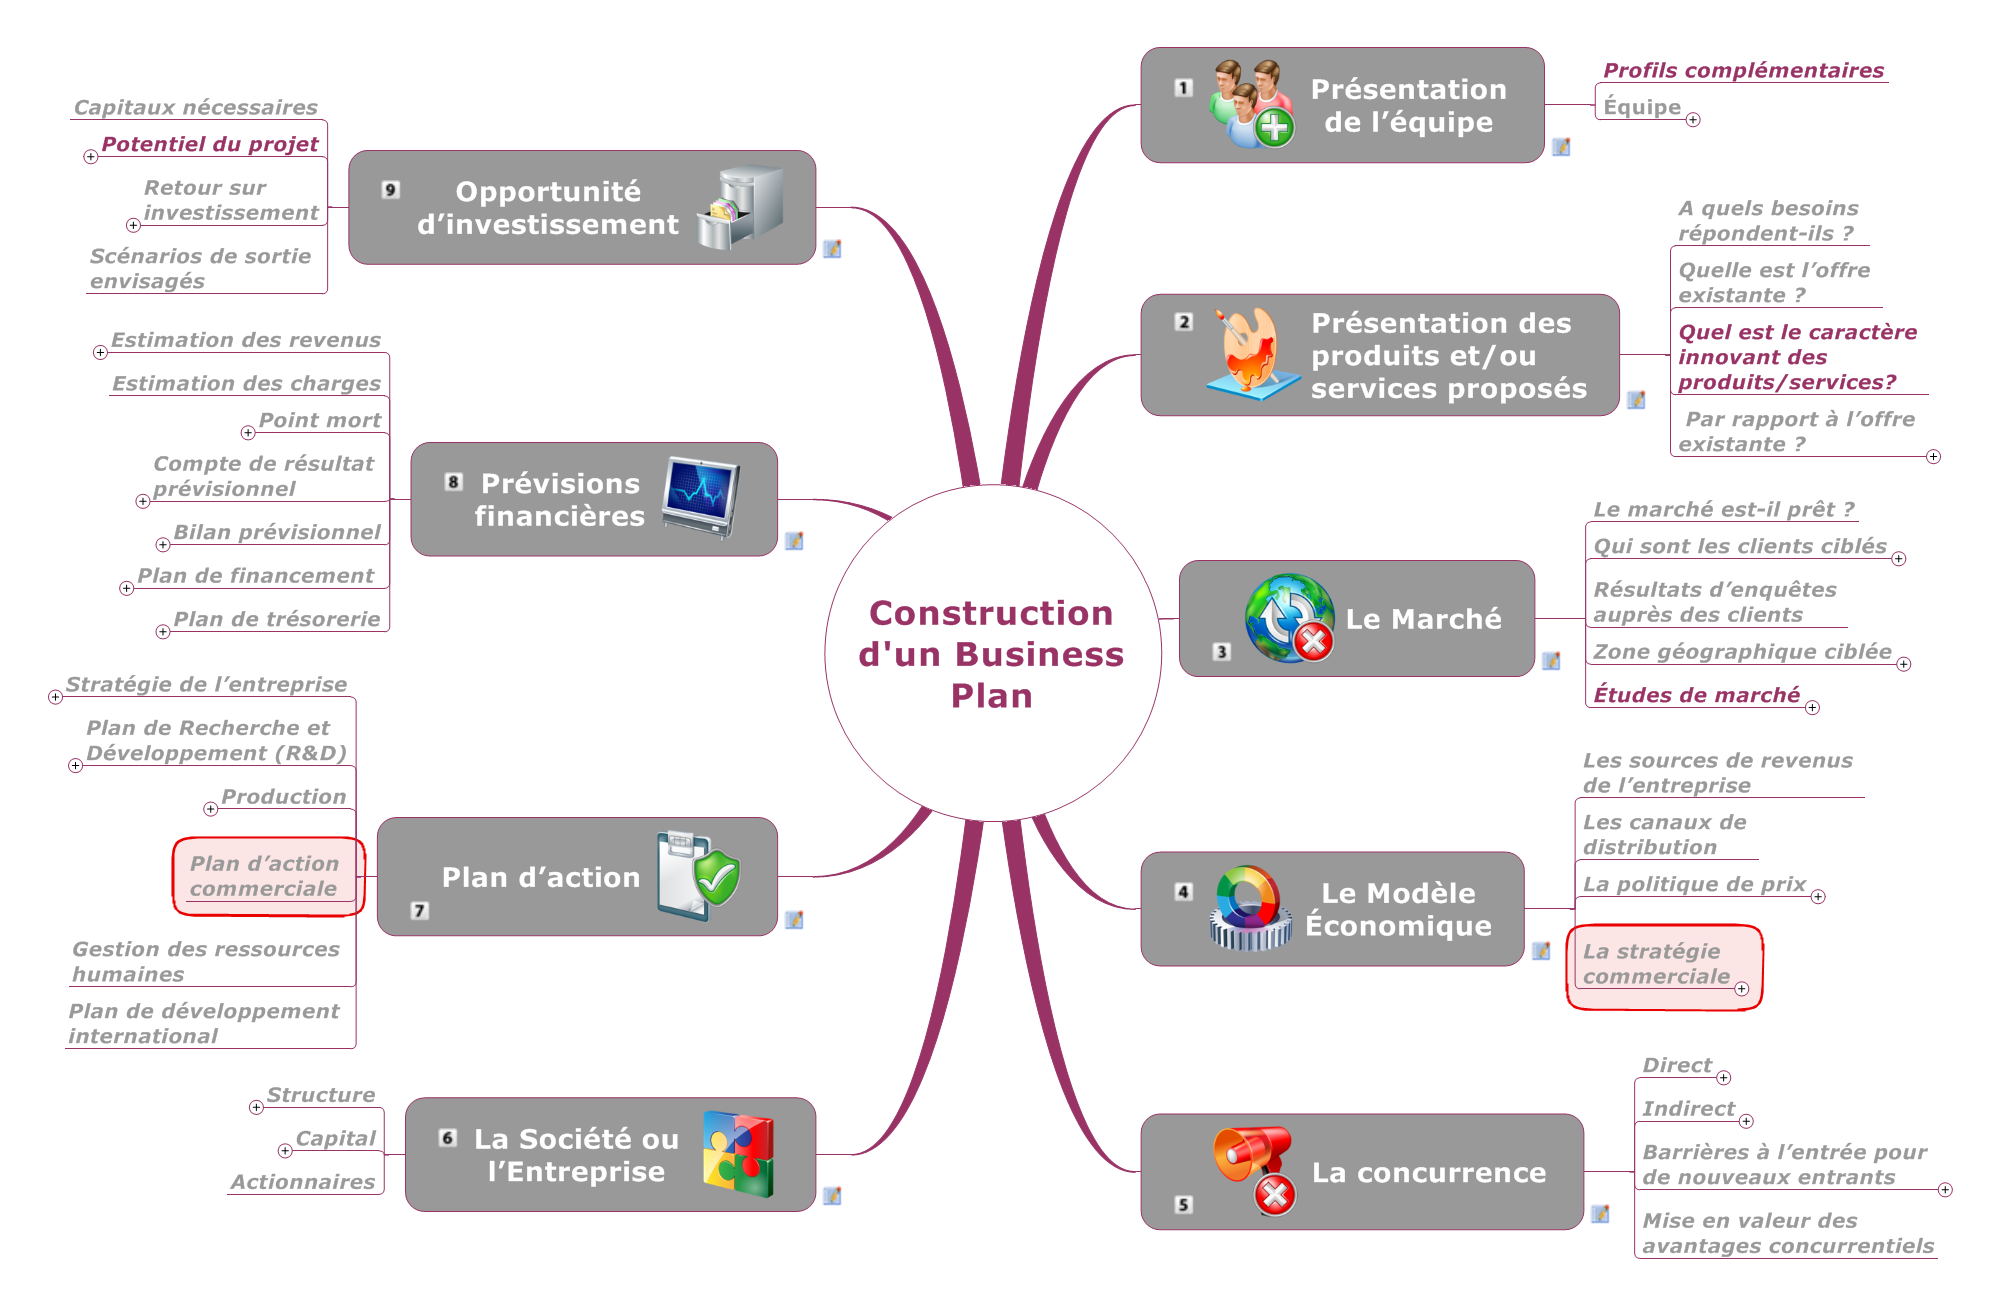 Construction d'un Business Plan